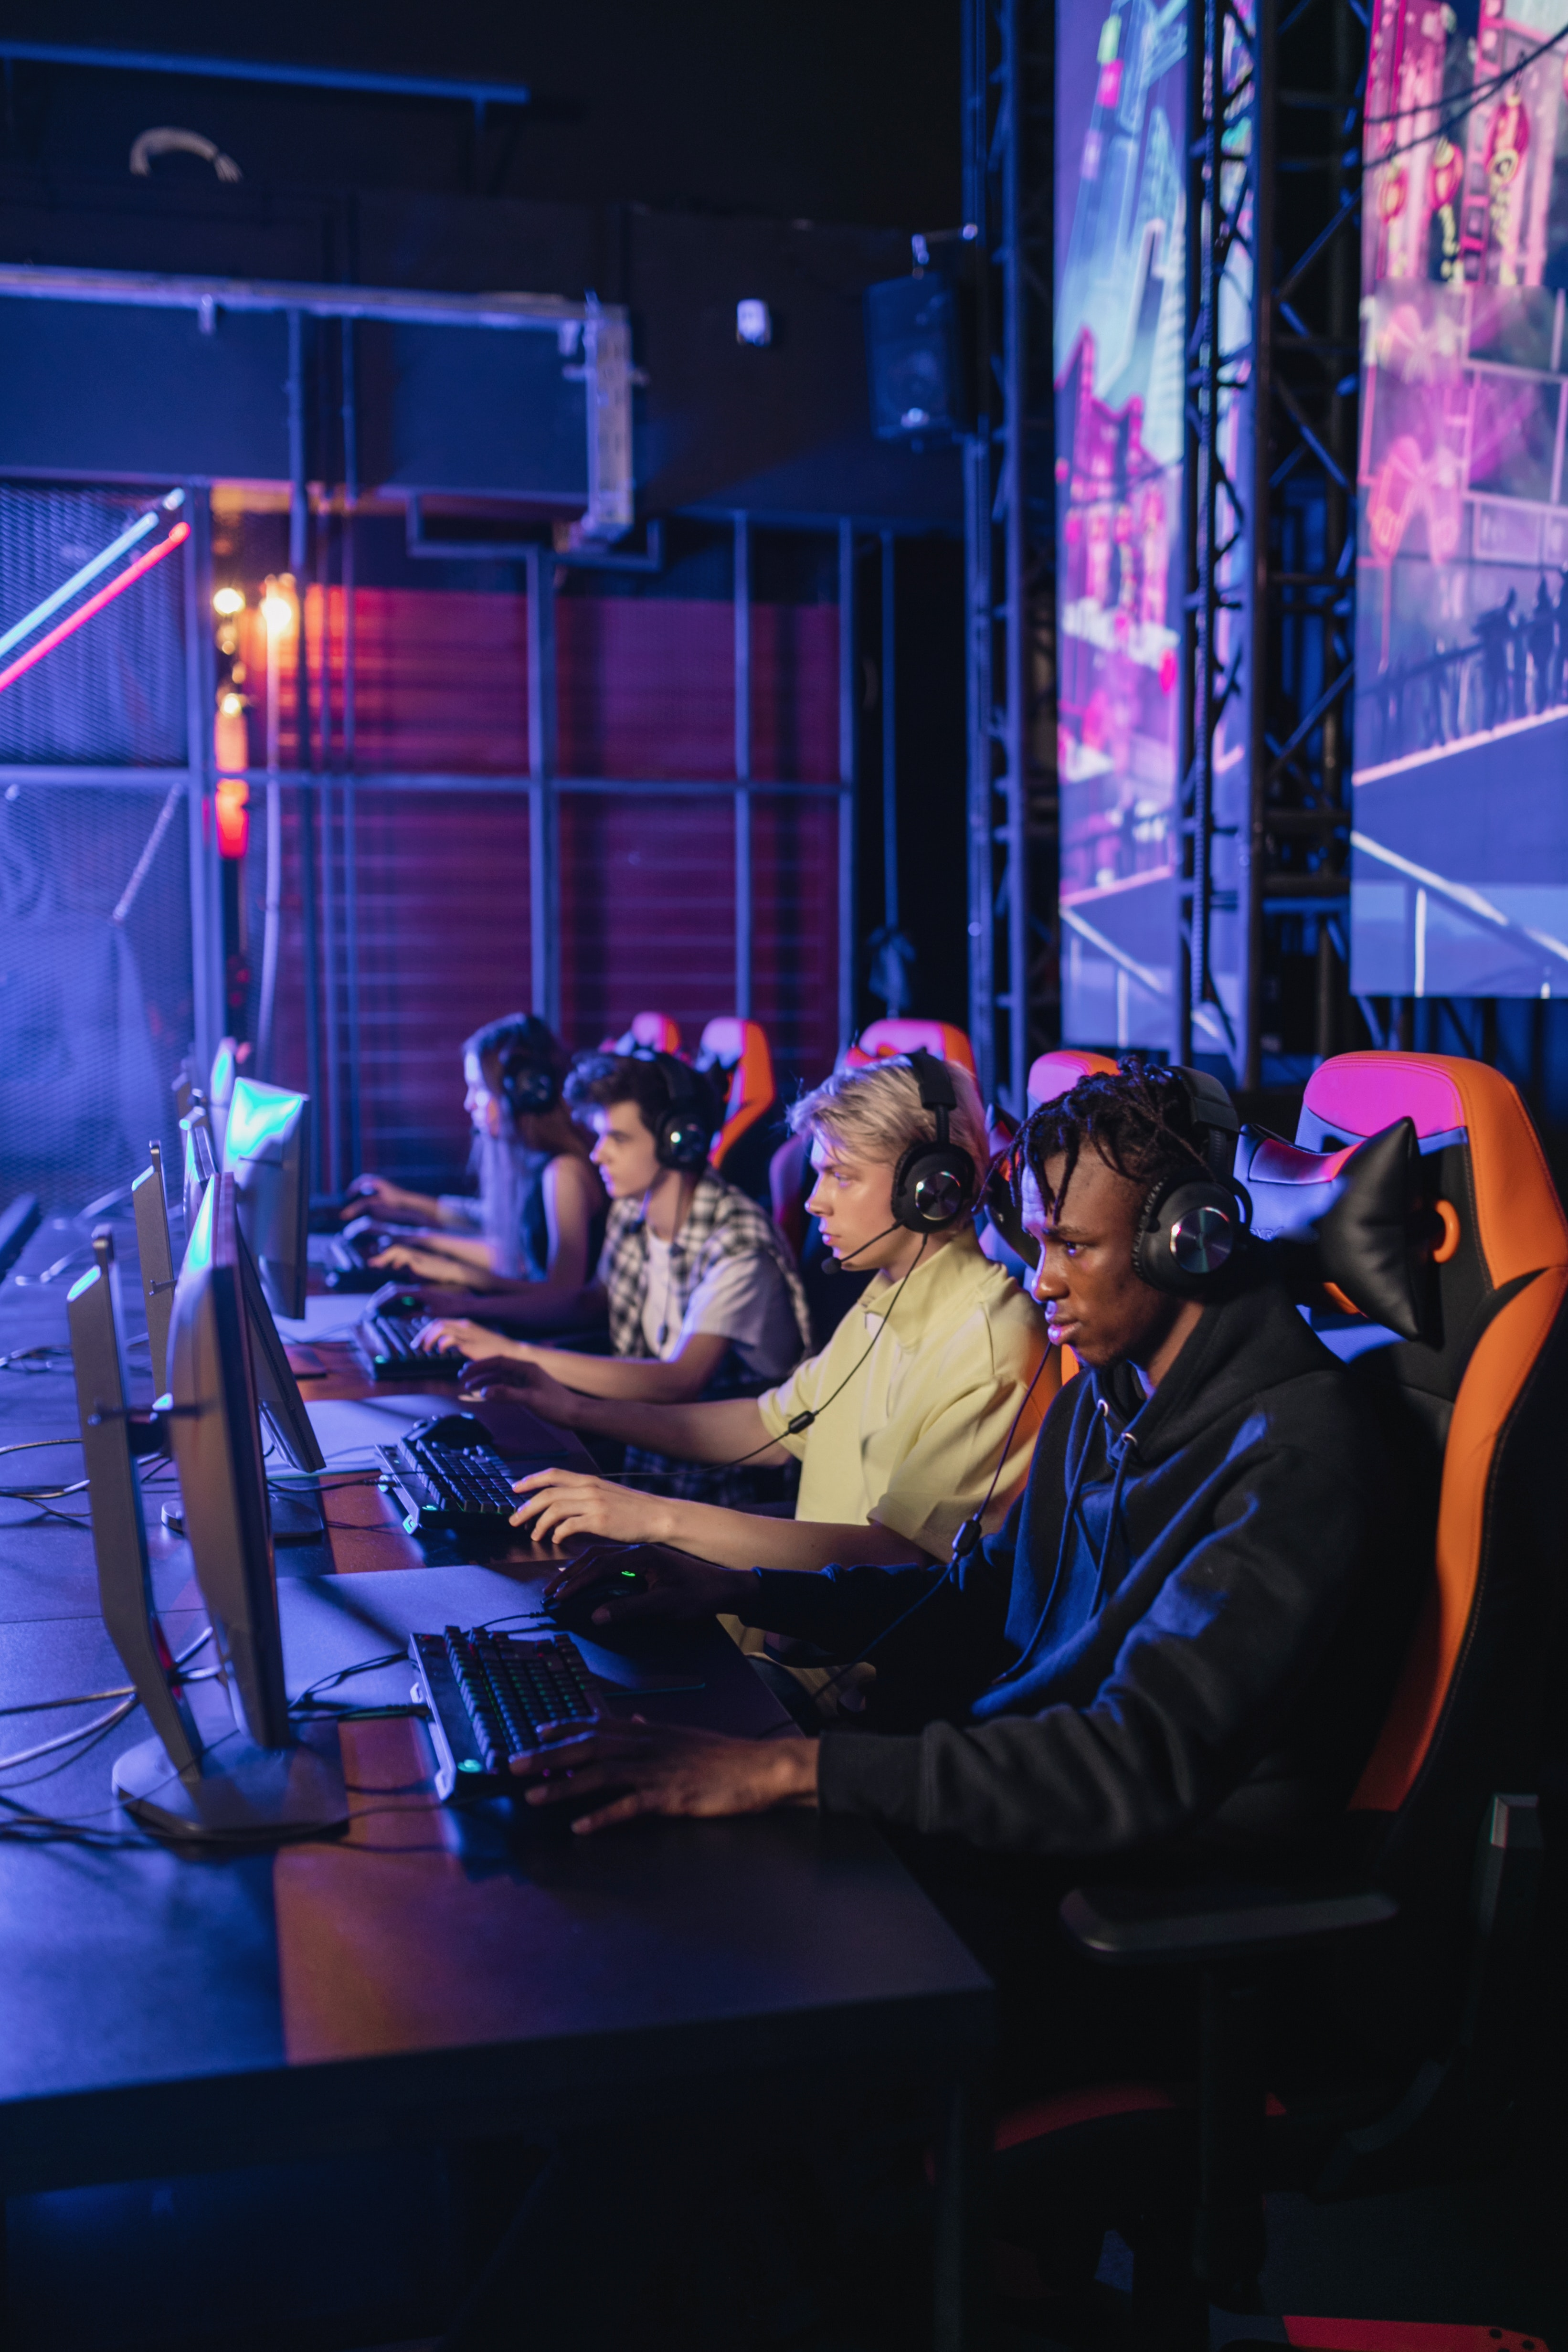 3 men and 1 woman, all wearing large headphones and sitting in gaming chairs in a row, look intently at individual computer screens